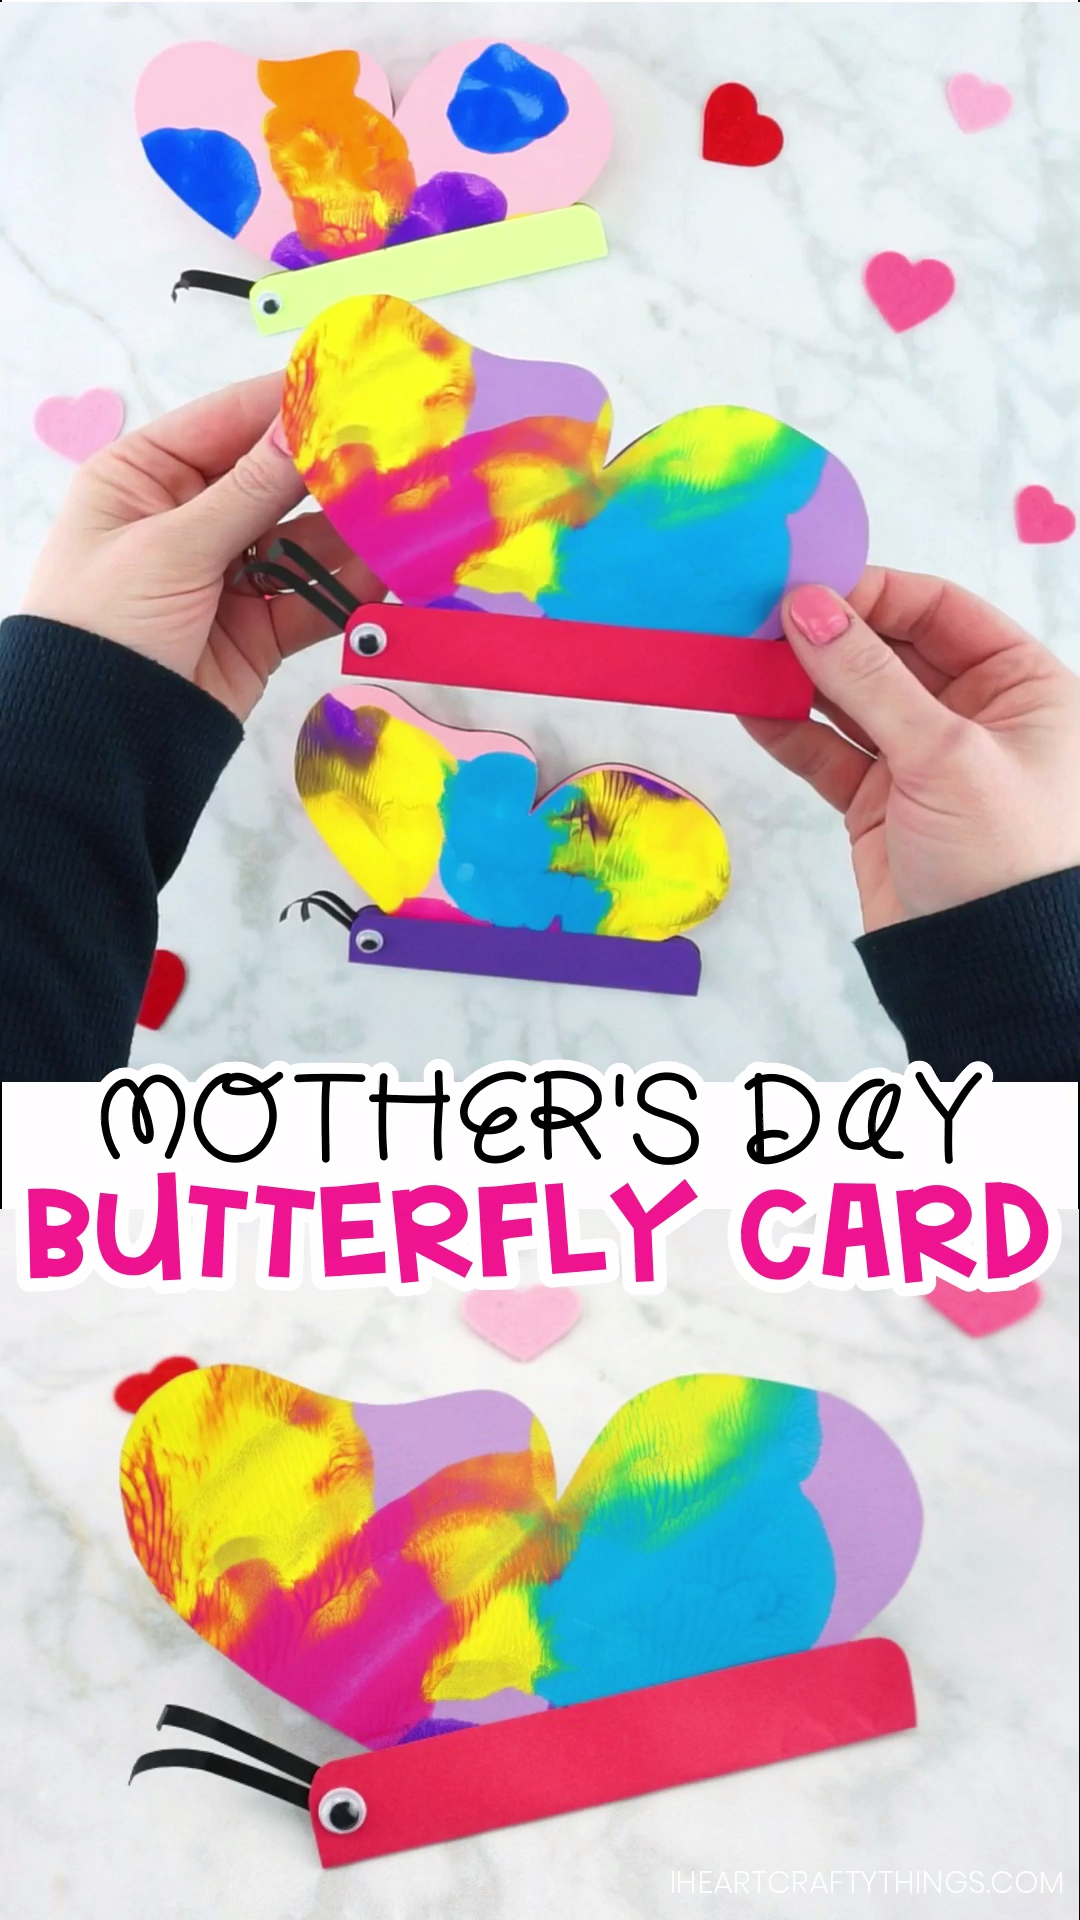 Basteln Spielgruppe Ideen How To Make A Butterfly Card With Colorful Paint Smash Butterfly